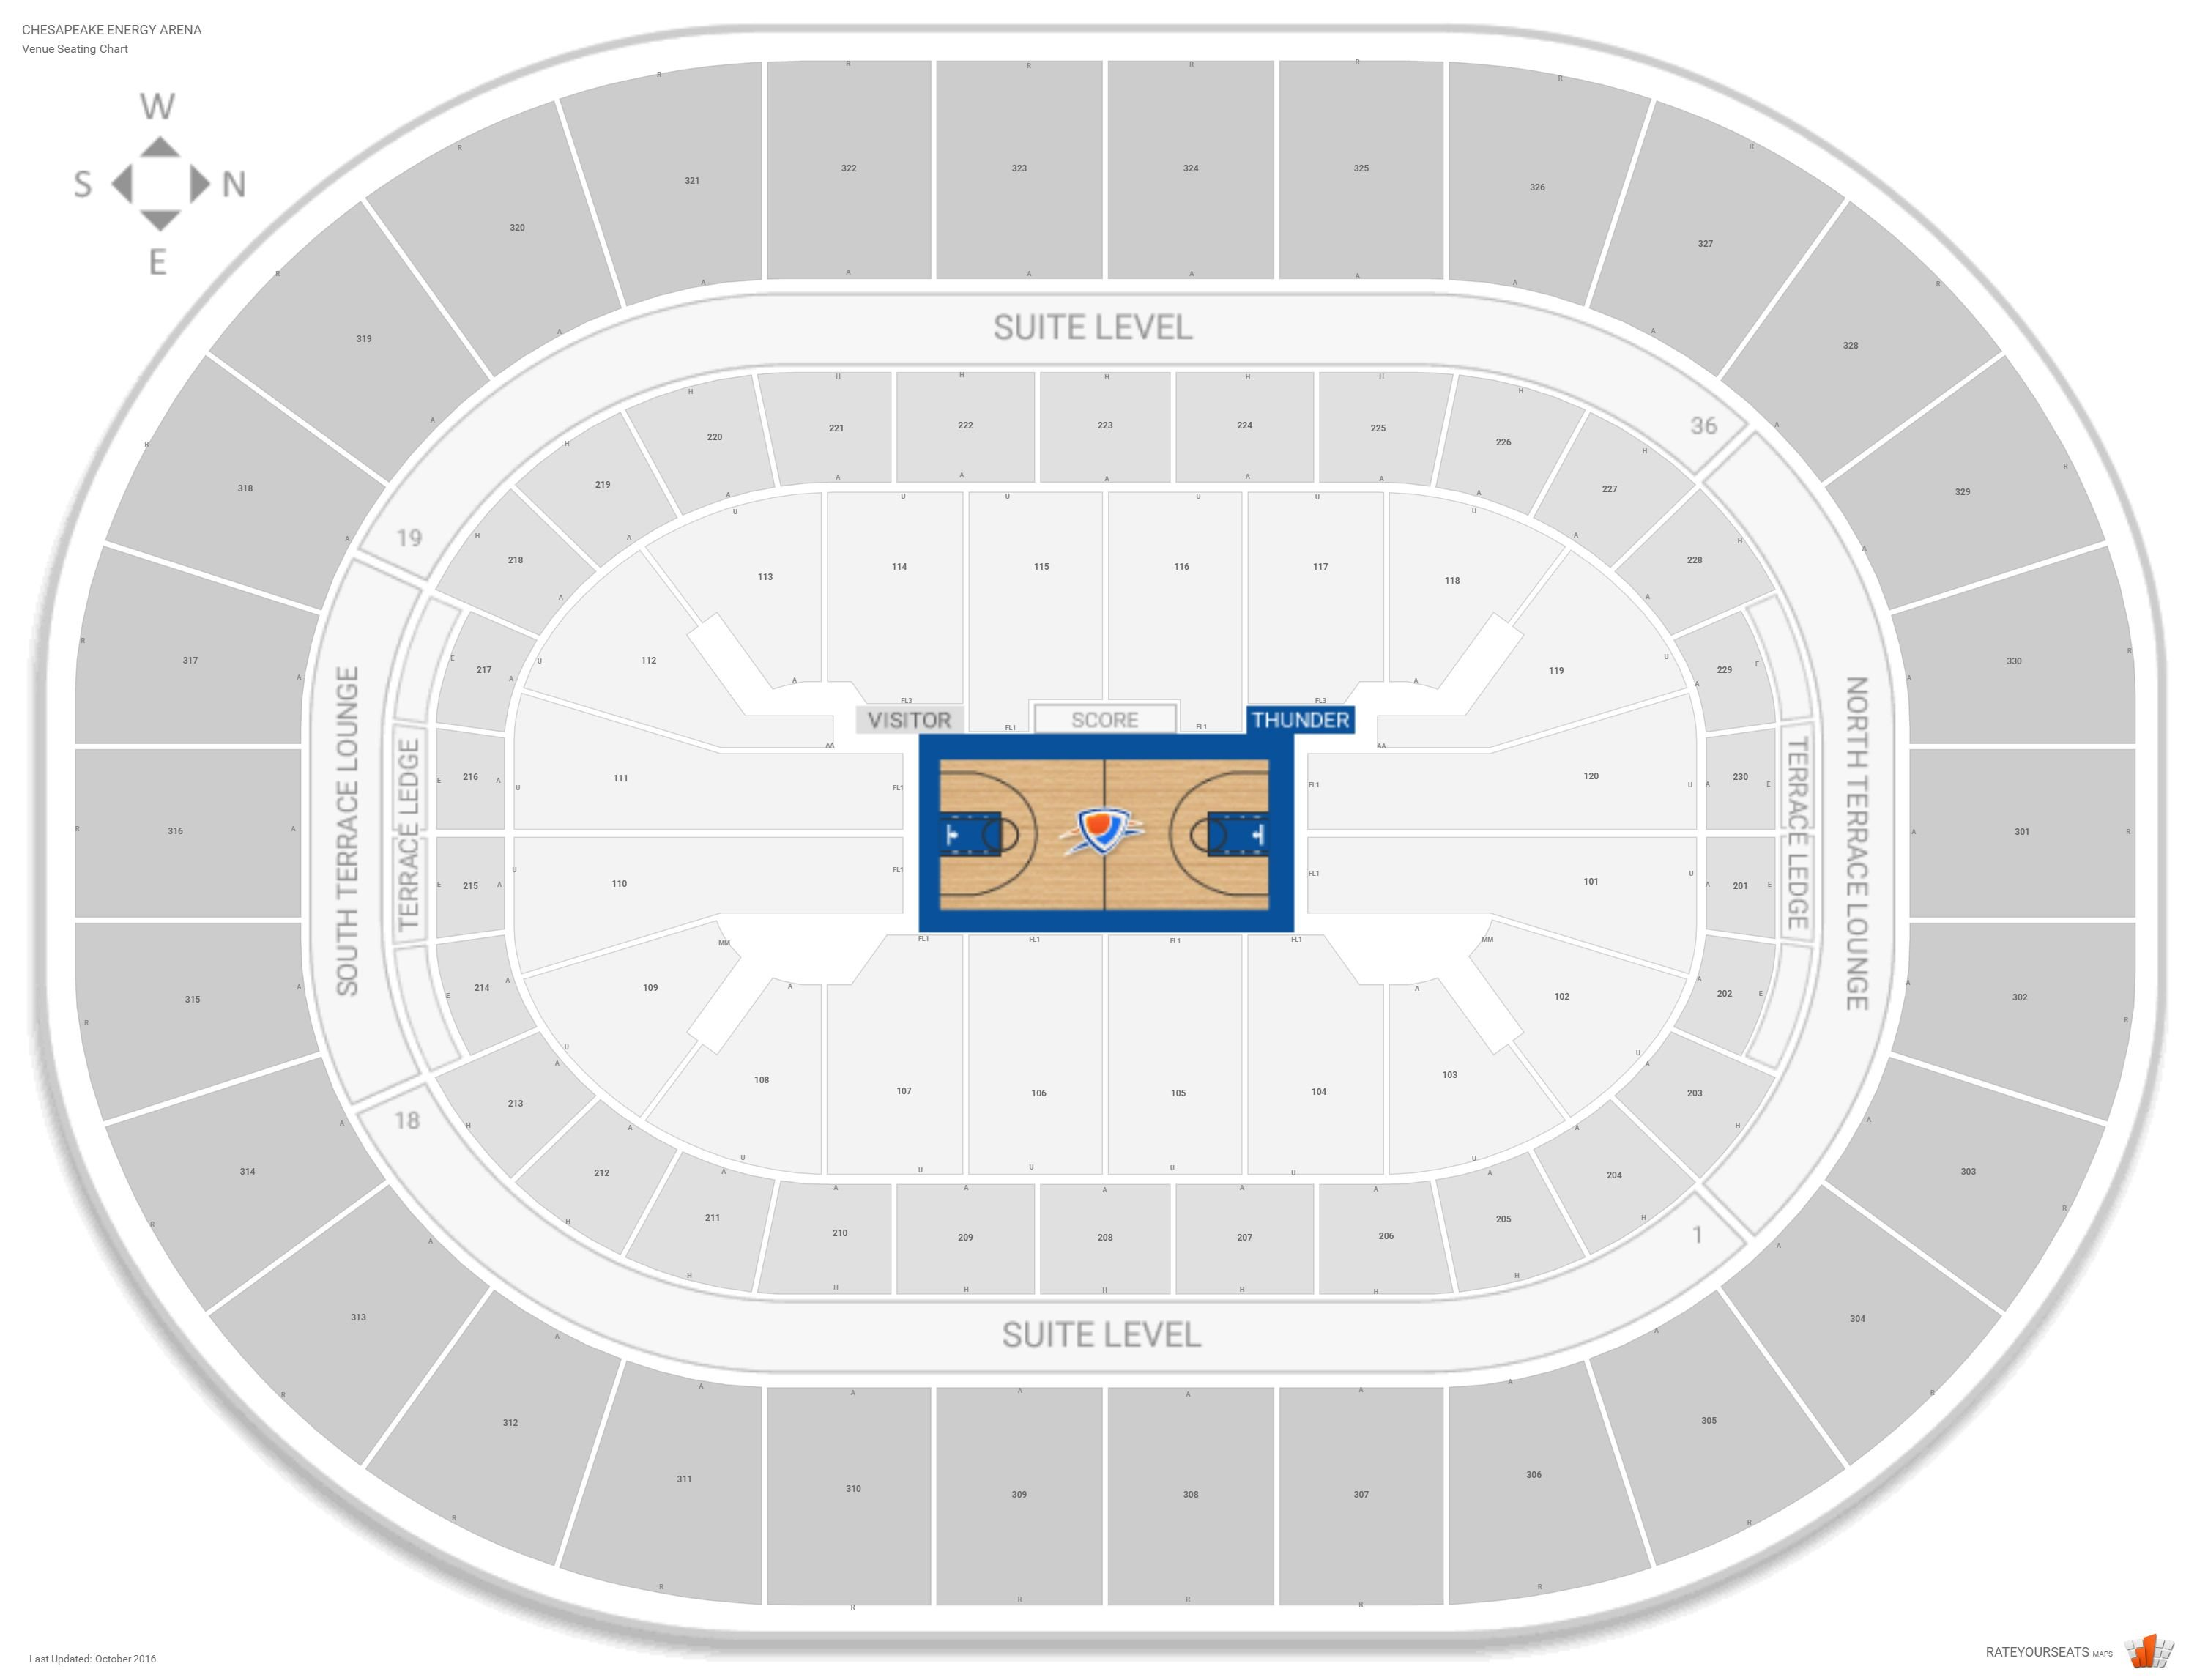 Chesapeake Energy Arena Seating Chart With Row Numbers